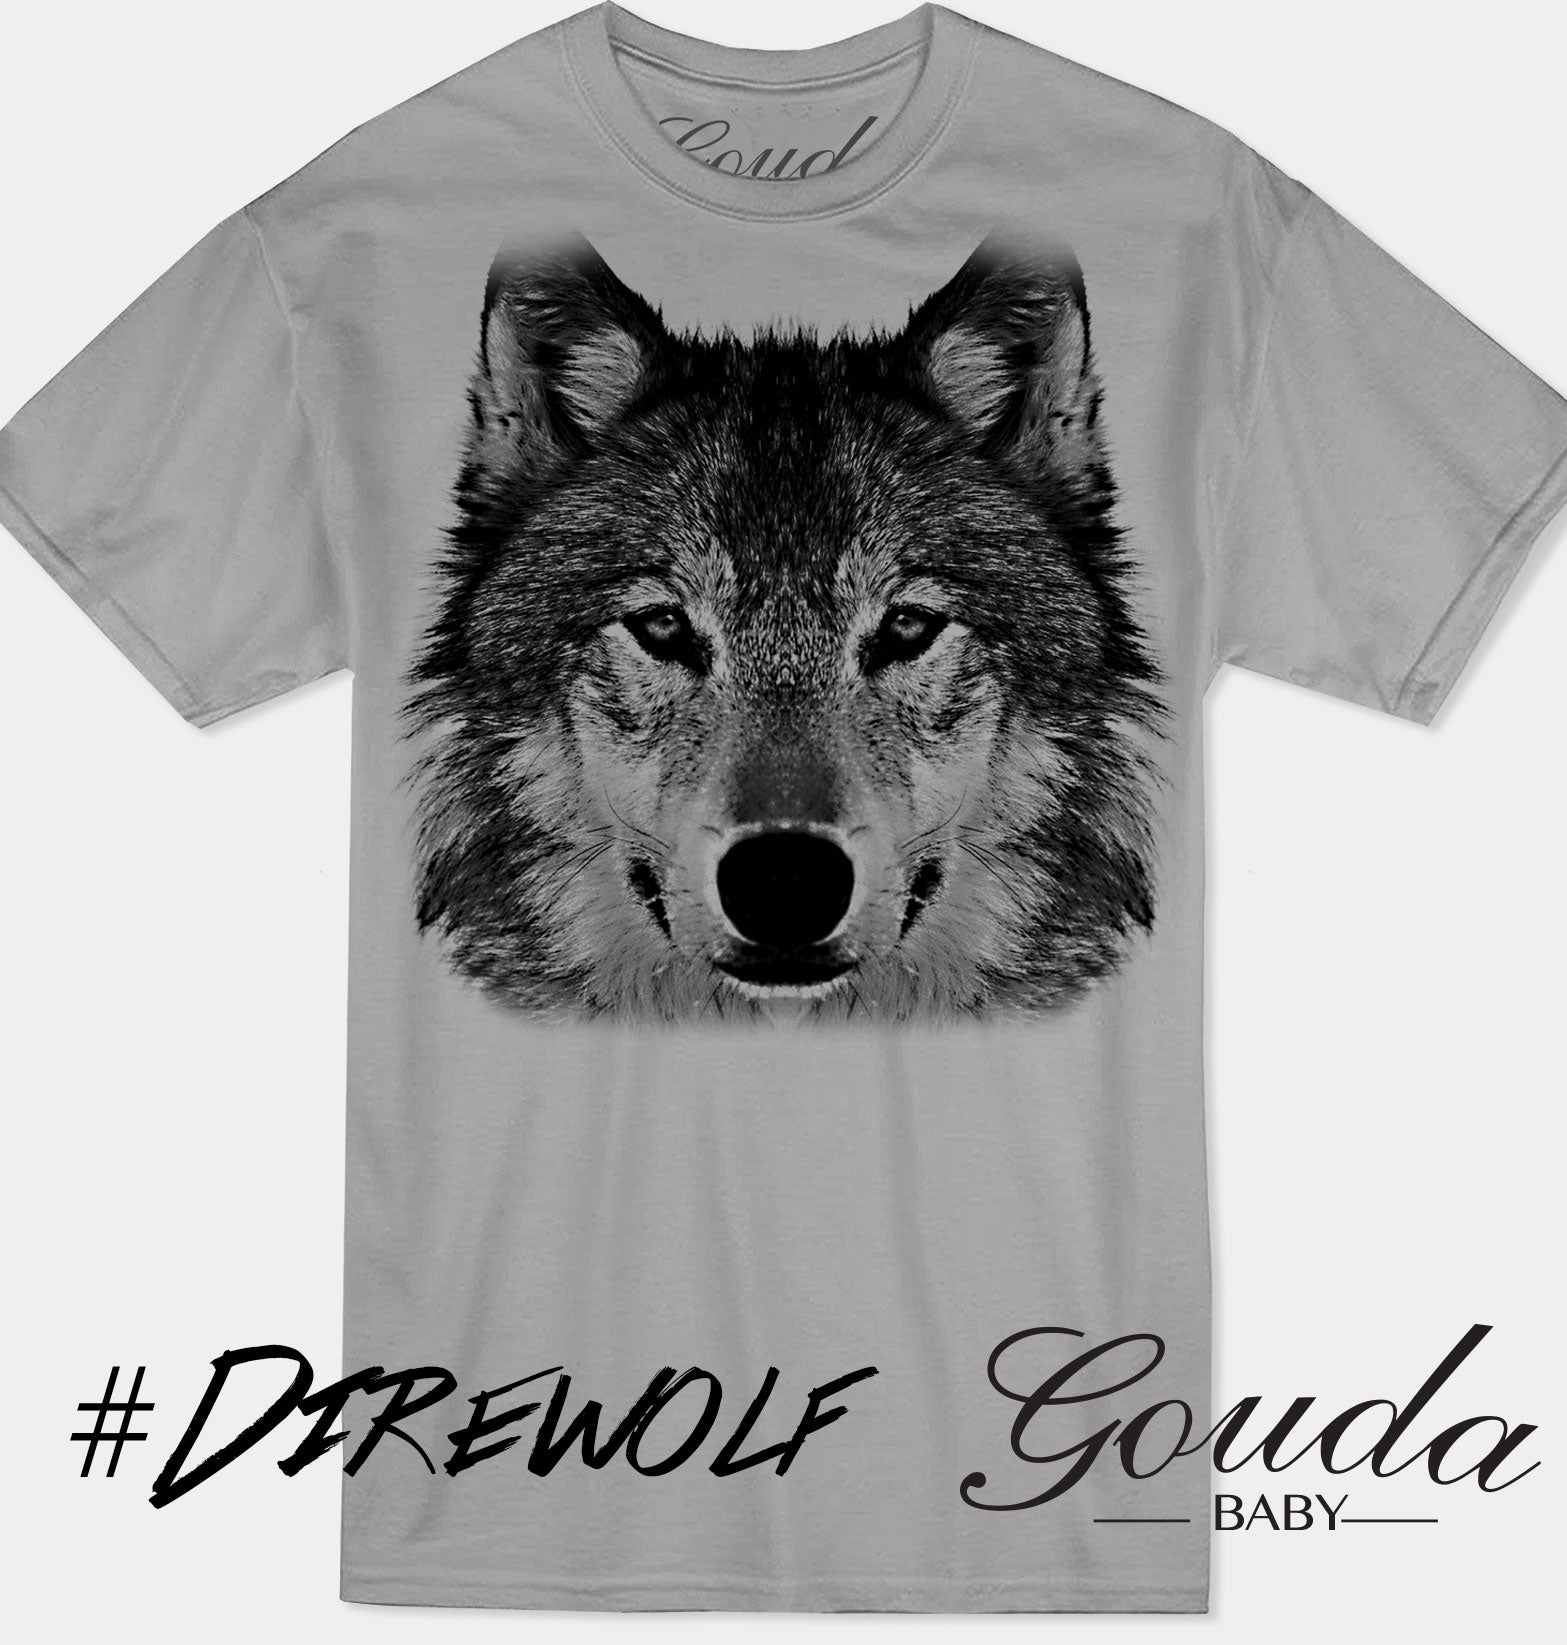 Direwolf Game of Thrones Tee